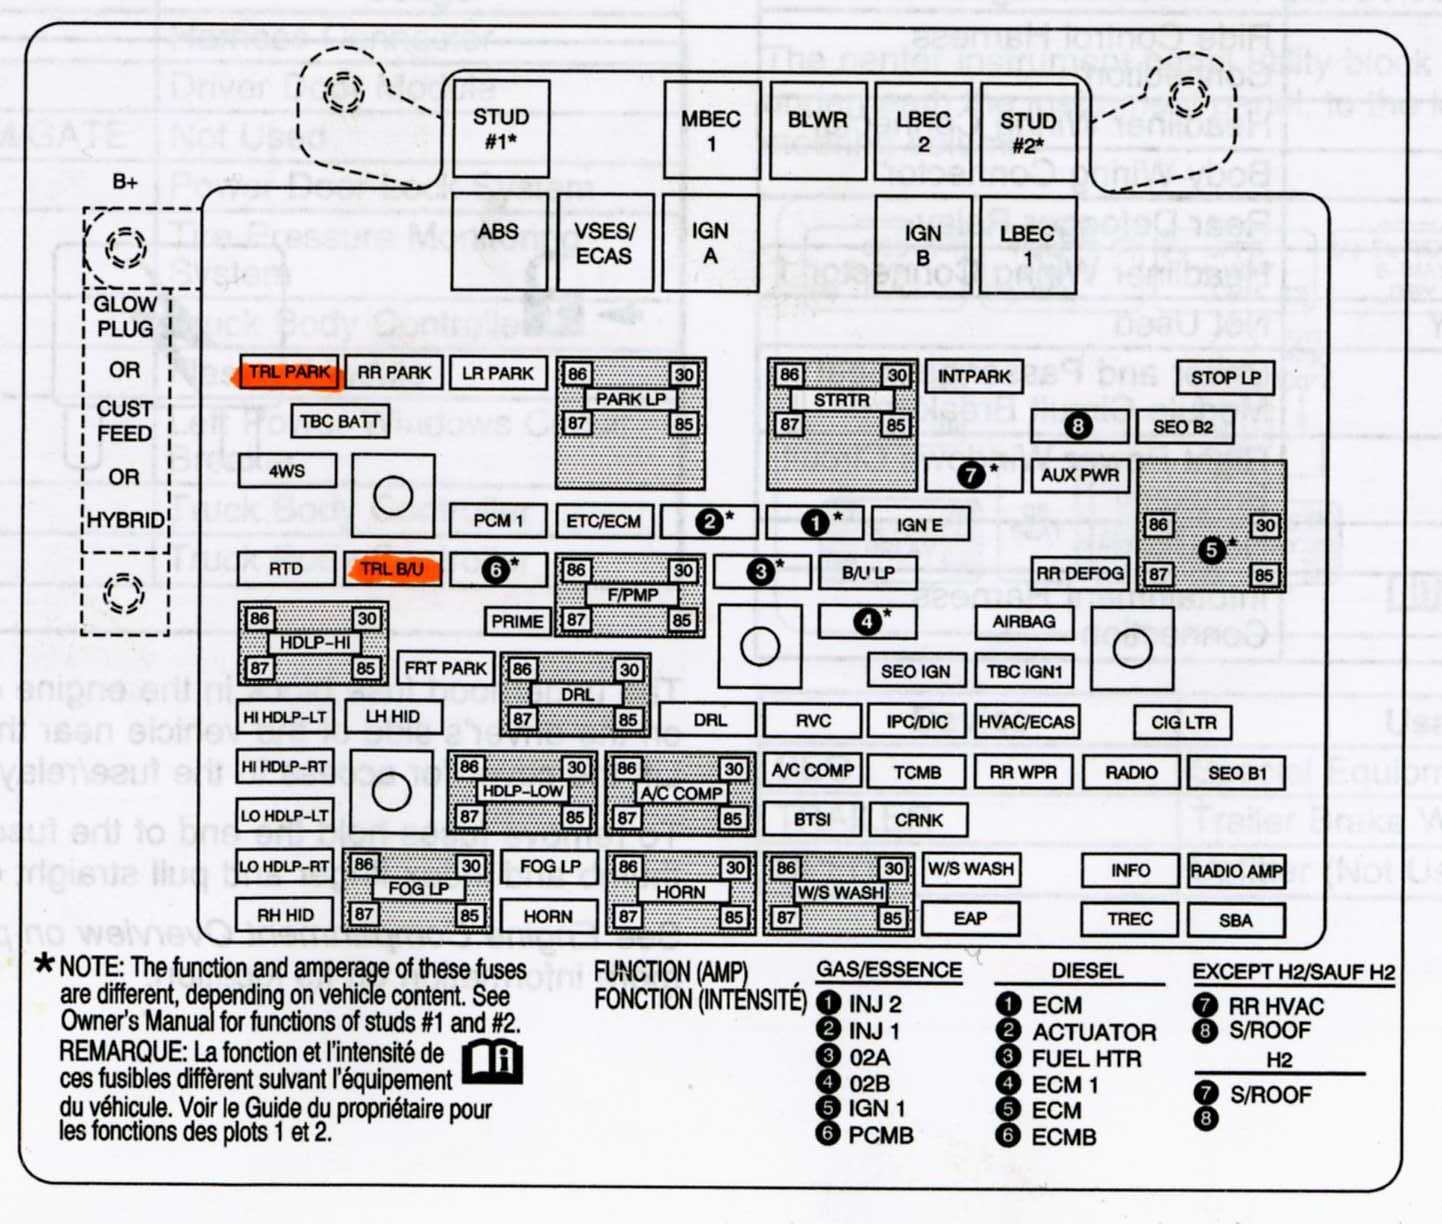 fuse box diagram for 2005 tahoe 2007 avalanche fuse box ... 2005 tahoe fuse box diagram #10